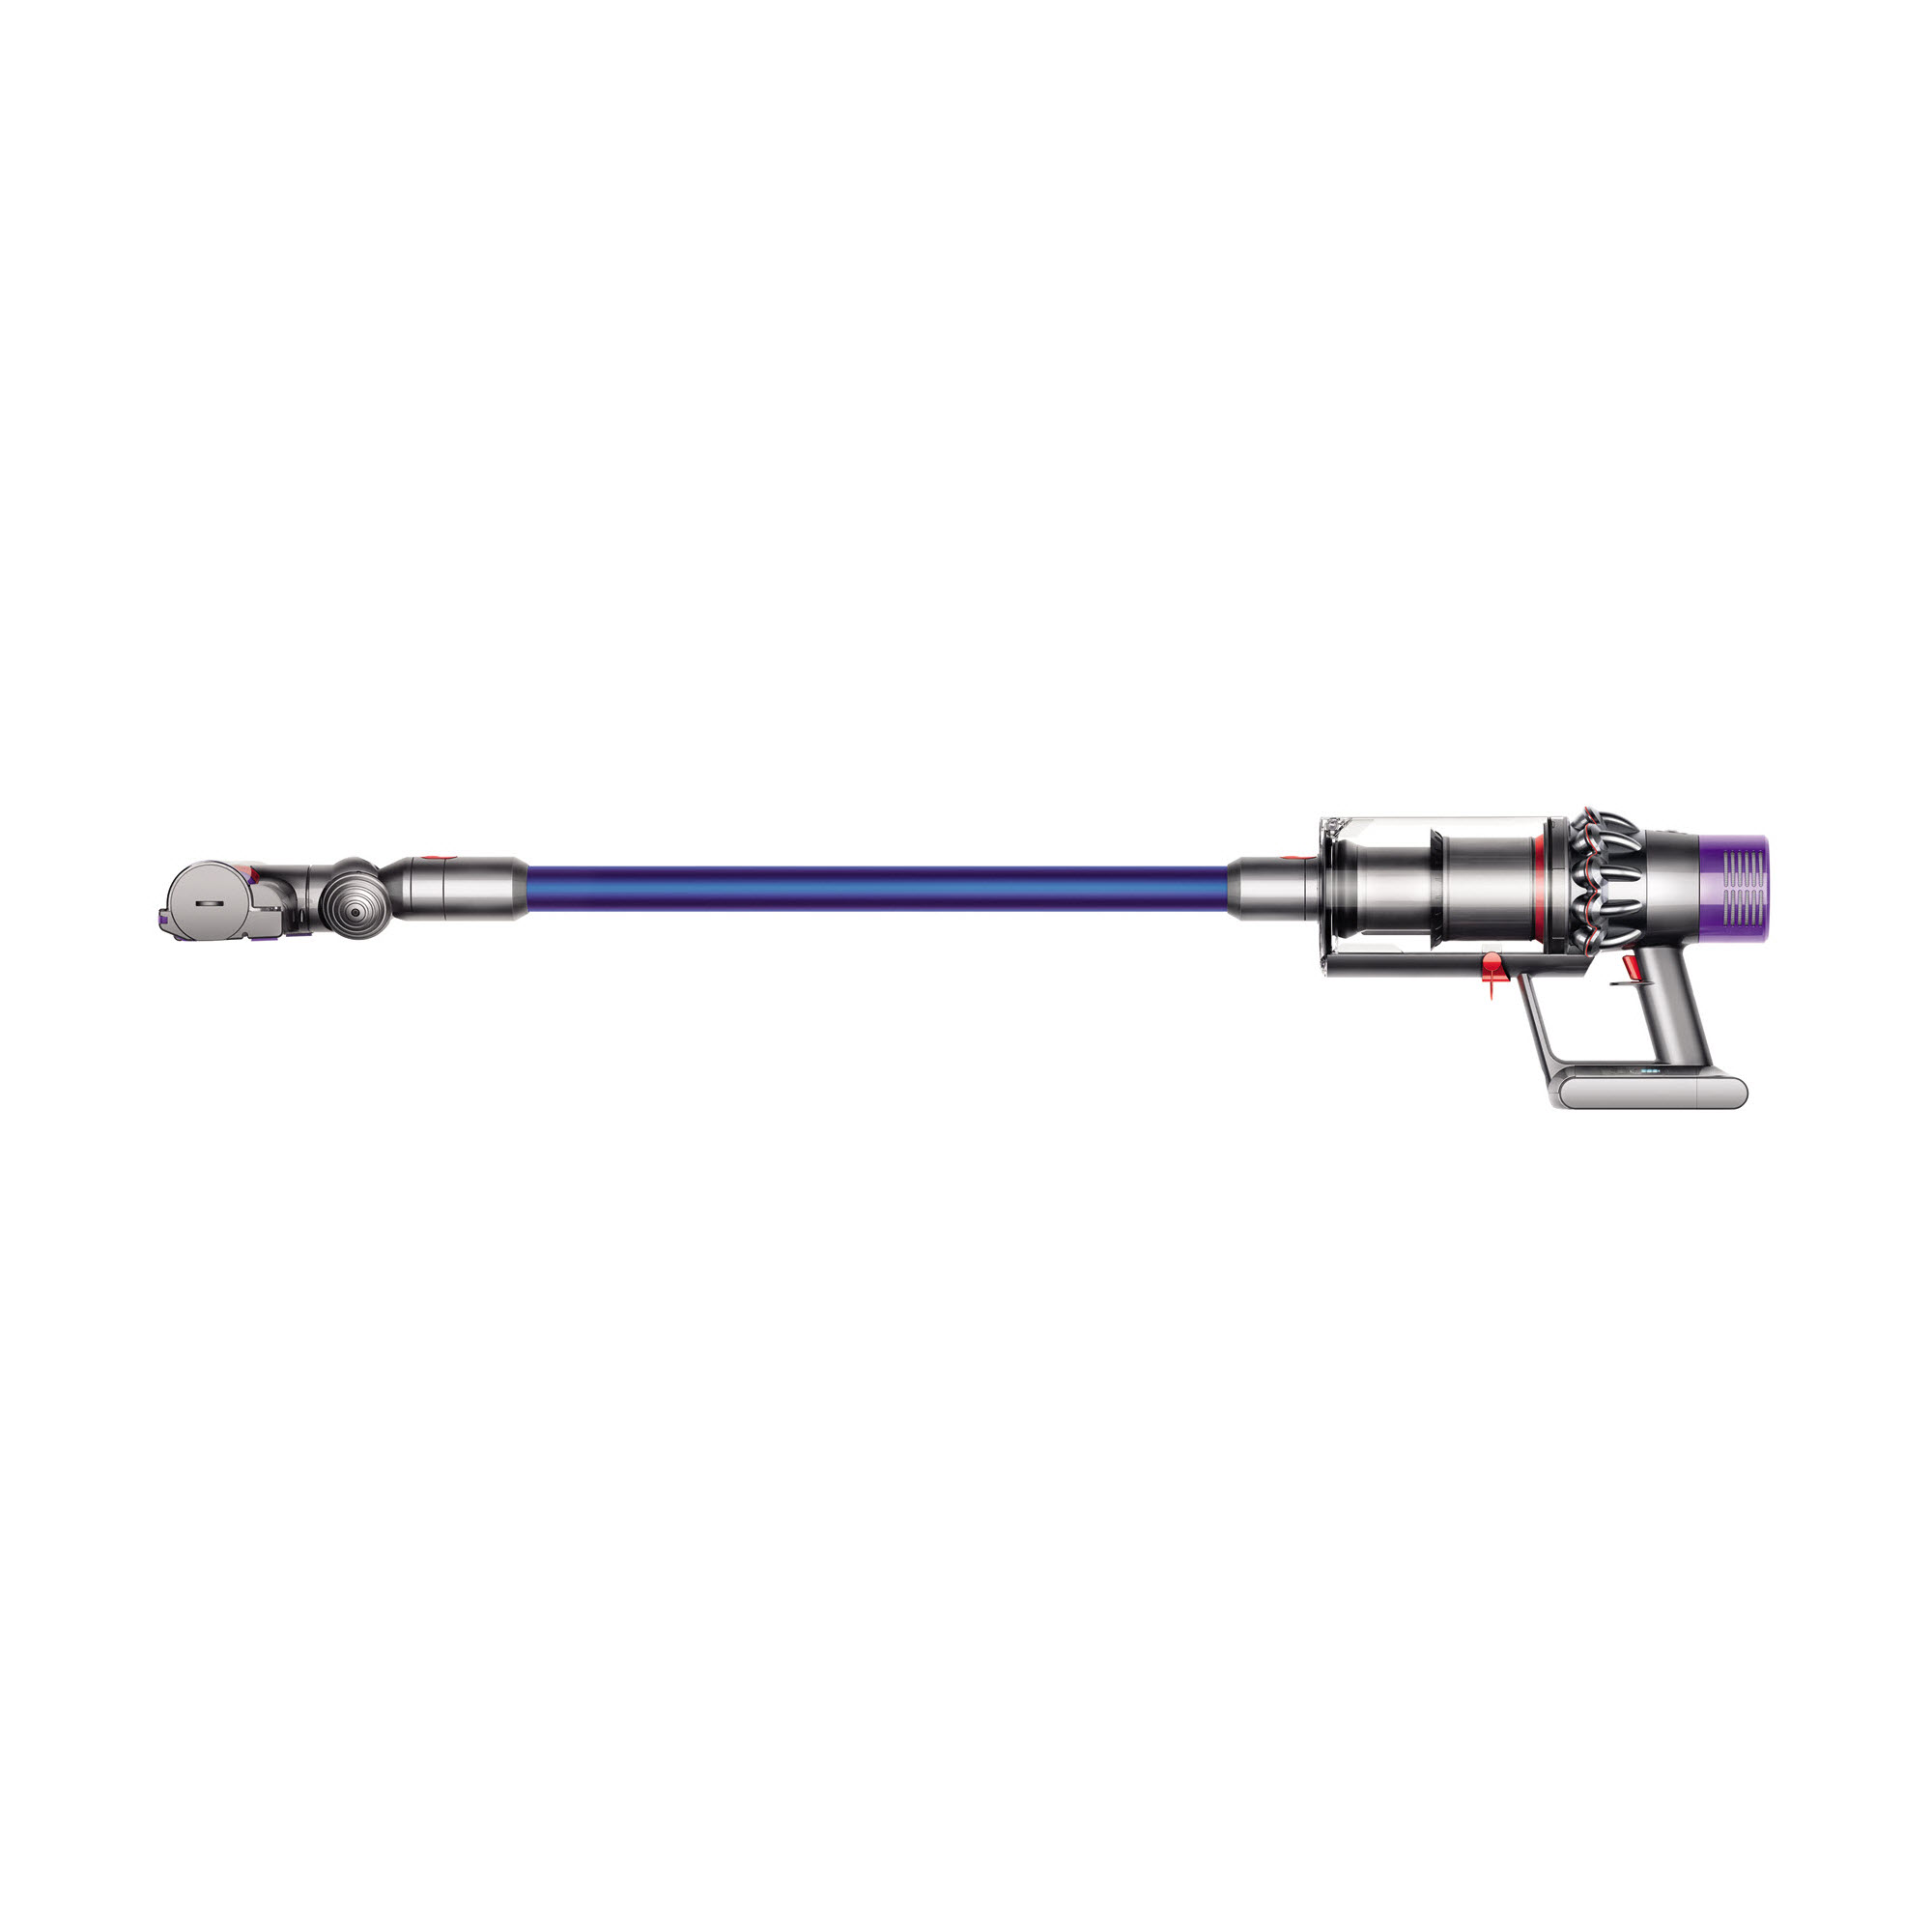 Dyson-V10-Absolute-Cordless-Vacuum-Cleaner-Refurbished thumbnail 11